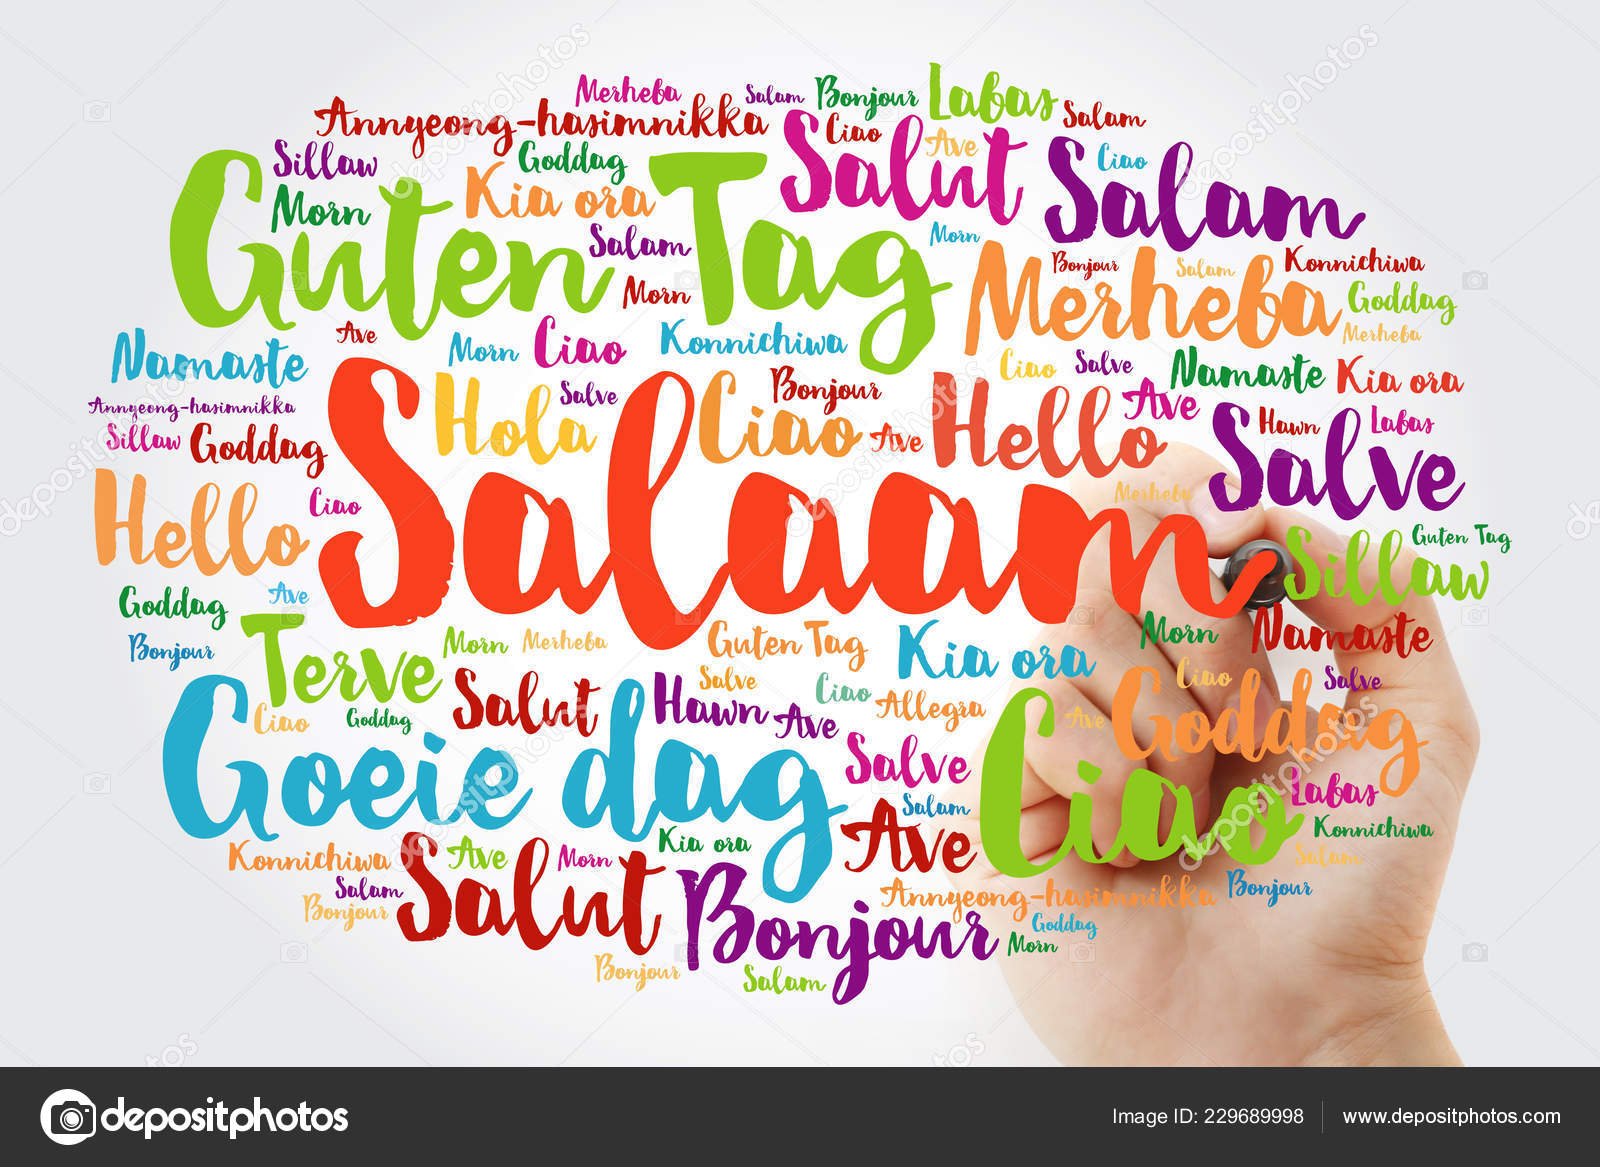 Swear words in other languages